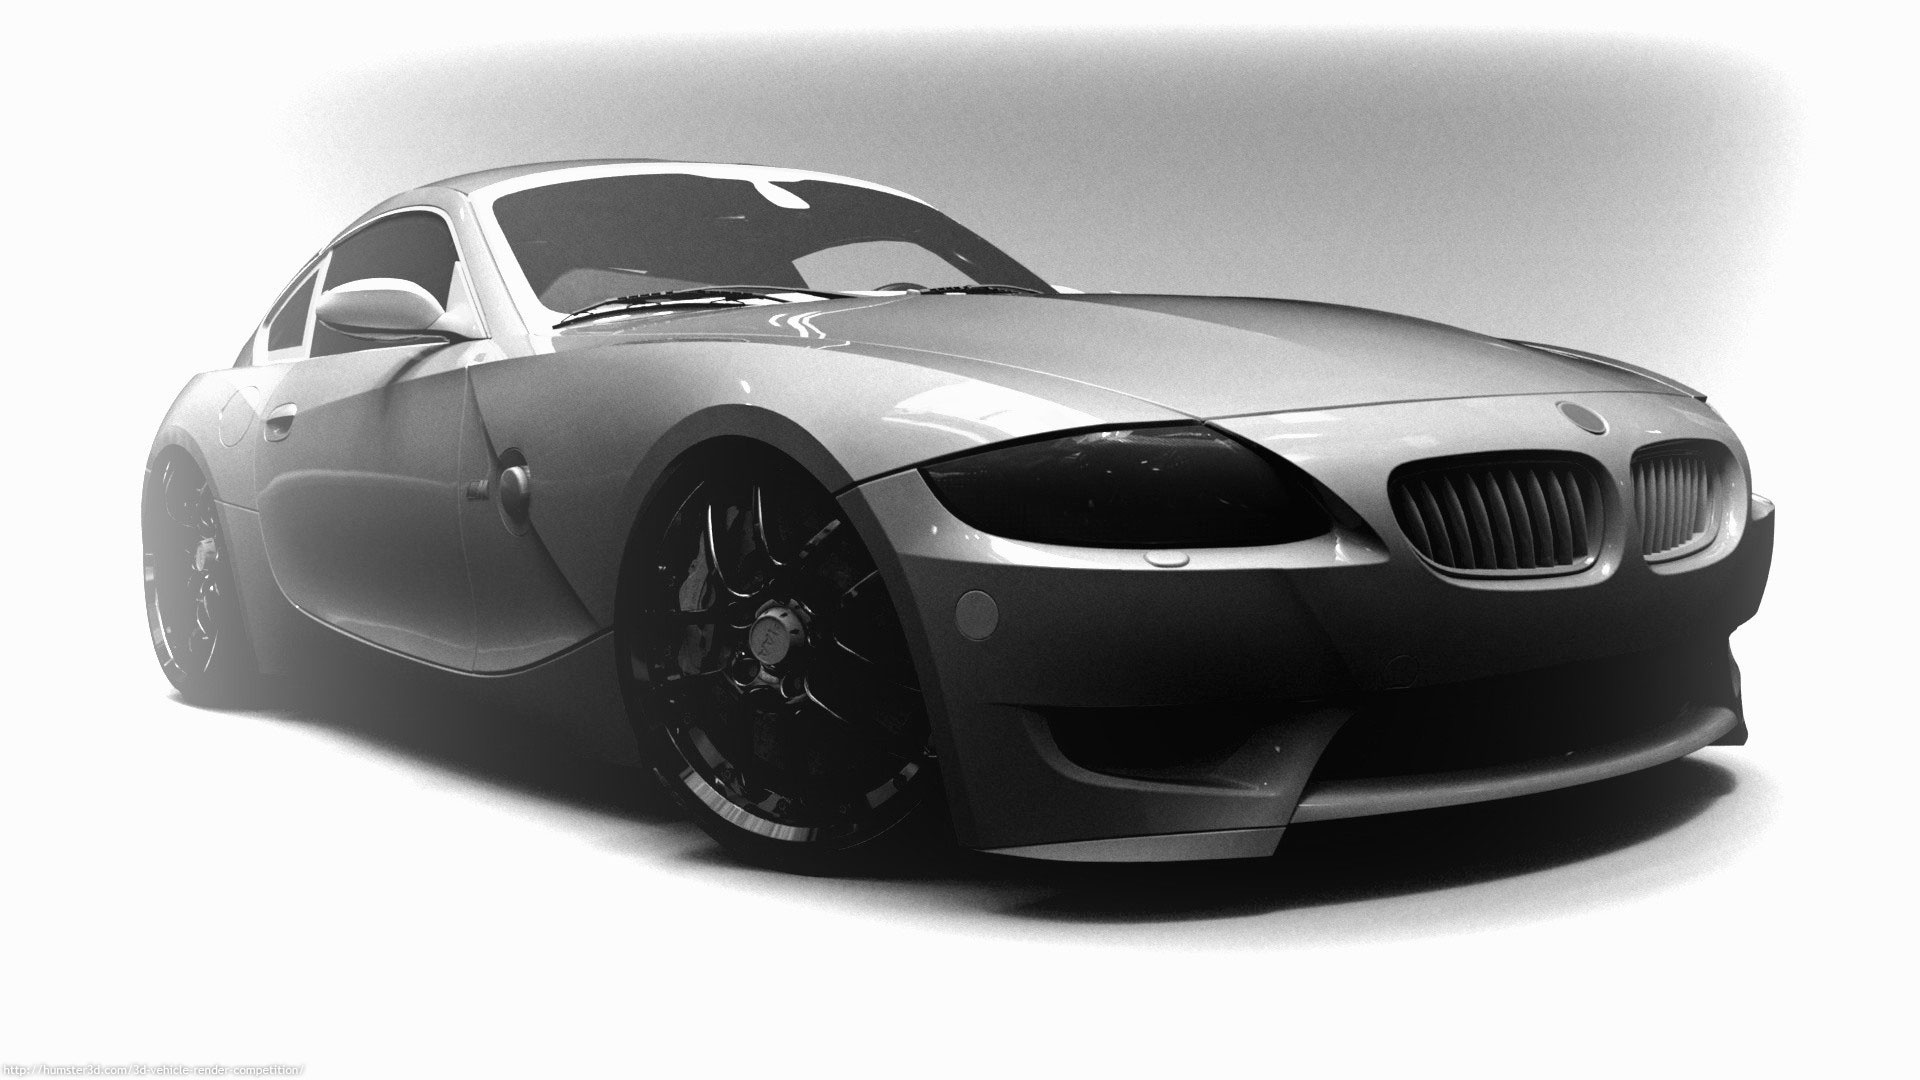 Z4 custom coupe